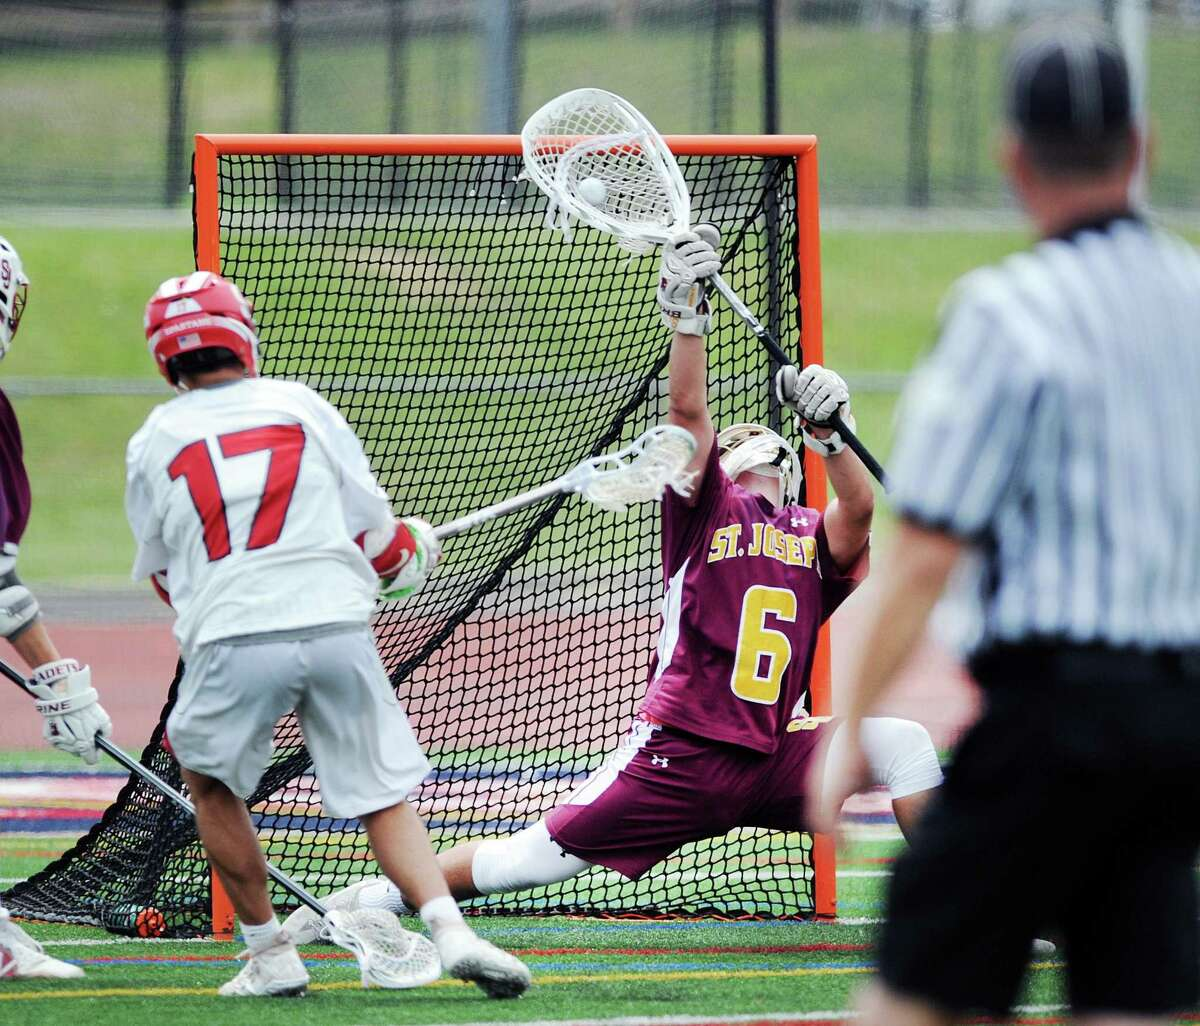 St. Joe's goalie Kyle Burbank (#6) stops a point-blank shot by Dante Giachello (#17) of Somers during the boys high school lacrosse Class S title game between St. Joseph High School and Somers High School at Brien McMahon High School in Norwalk, Conn., Saturday, June 9, 2018. St. Joe's captured the titled beating Somers 11-6, winning their 5th state title in 10 years.